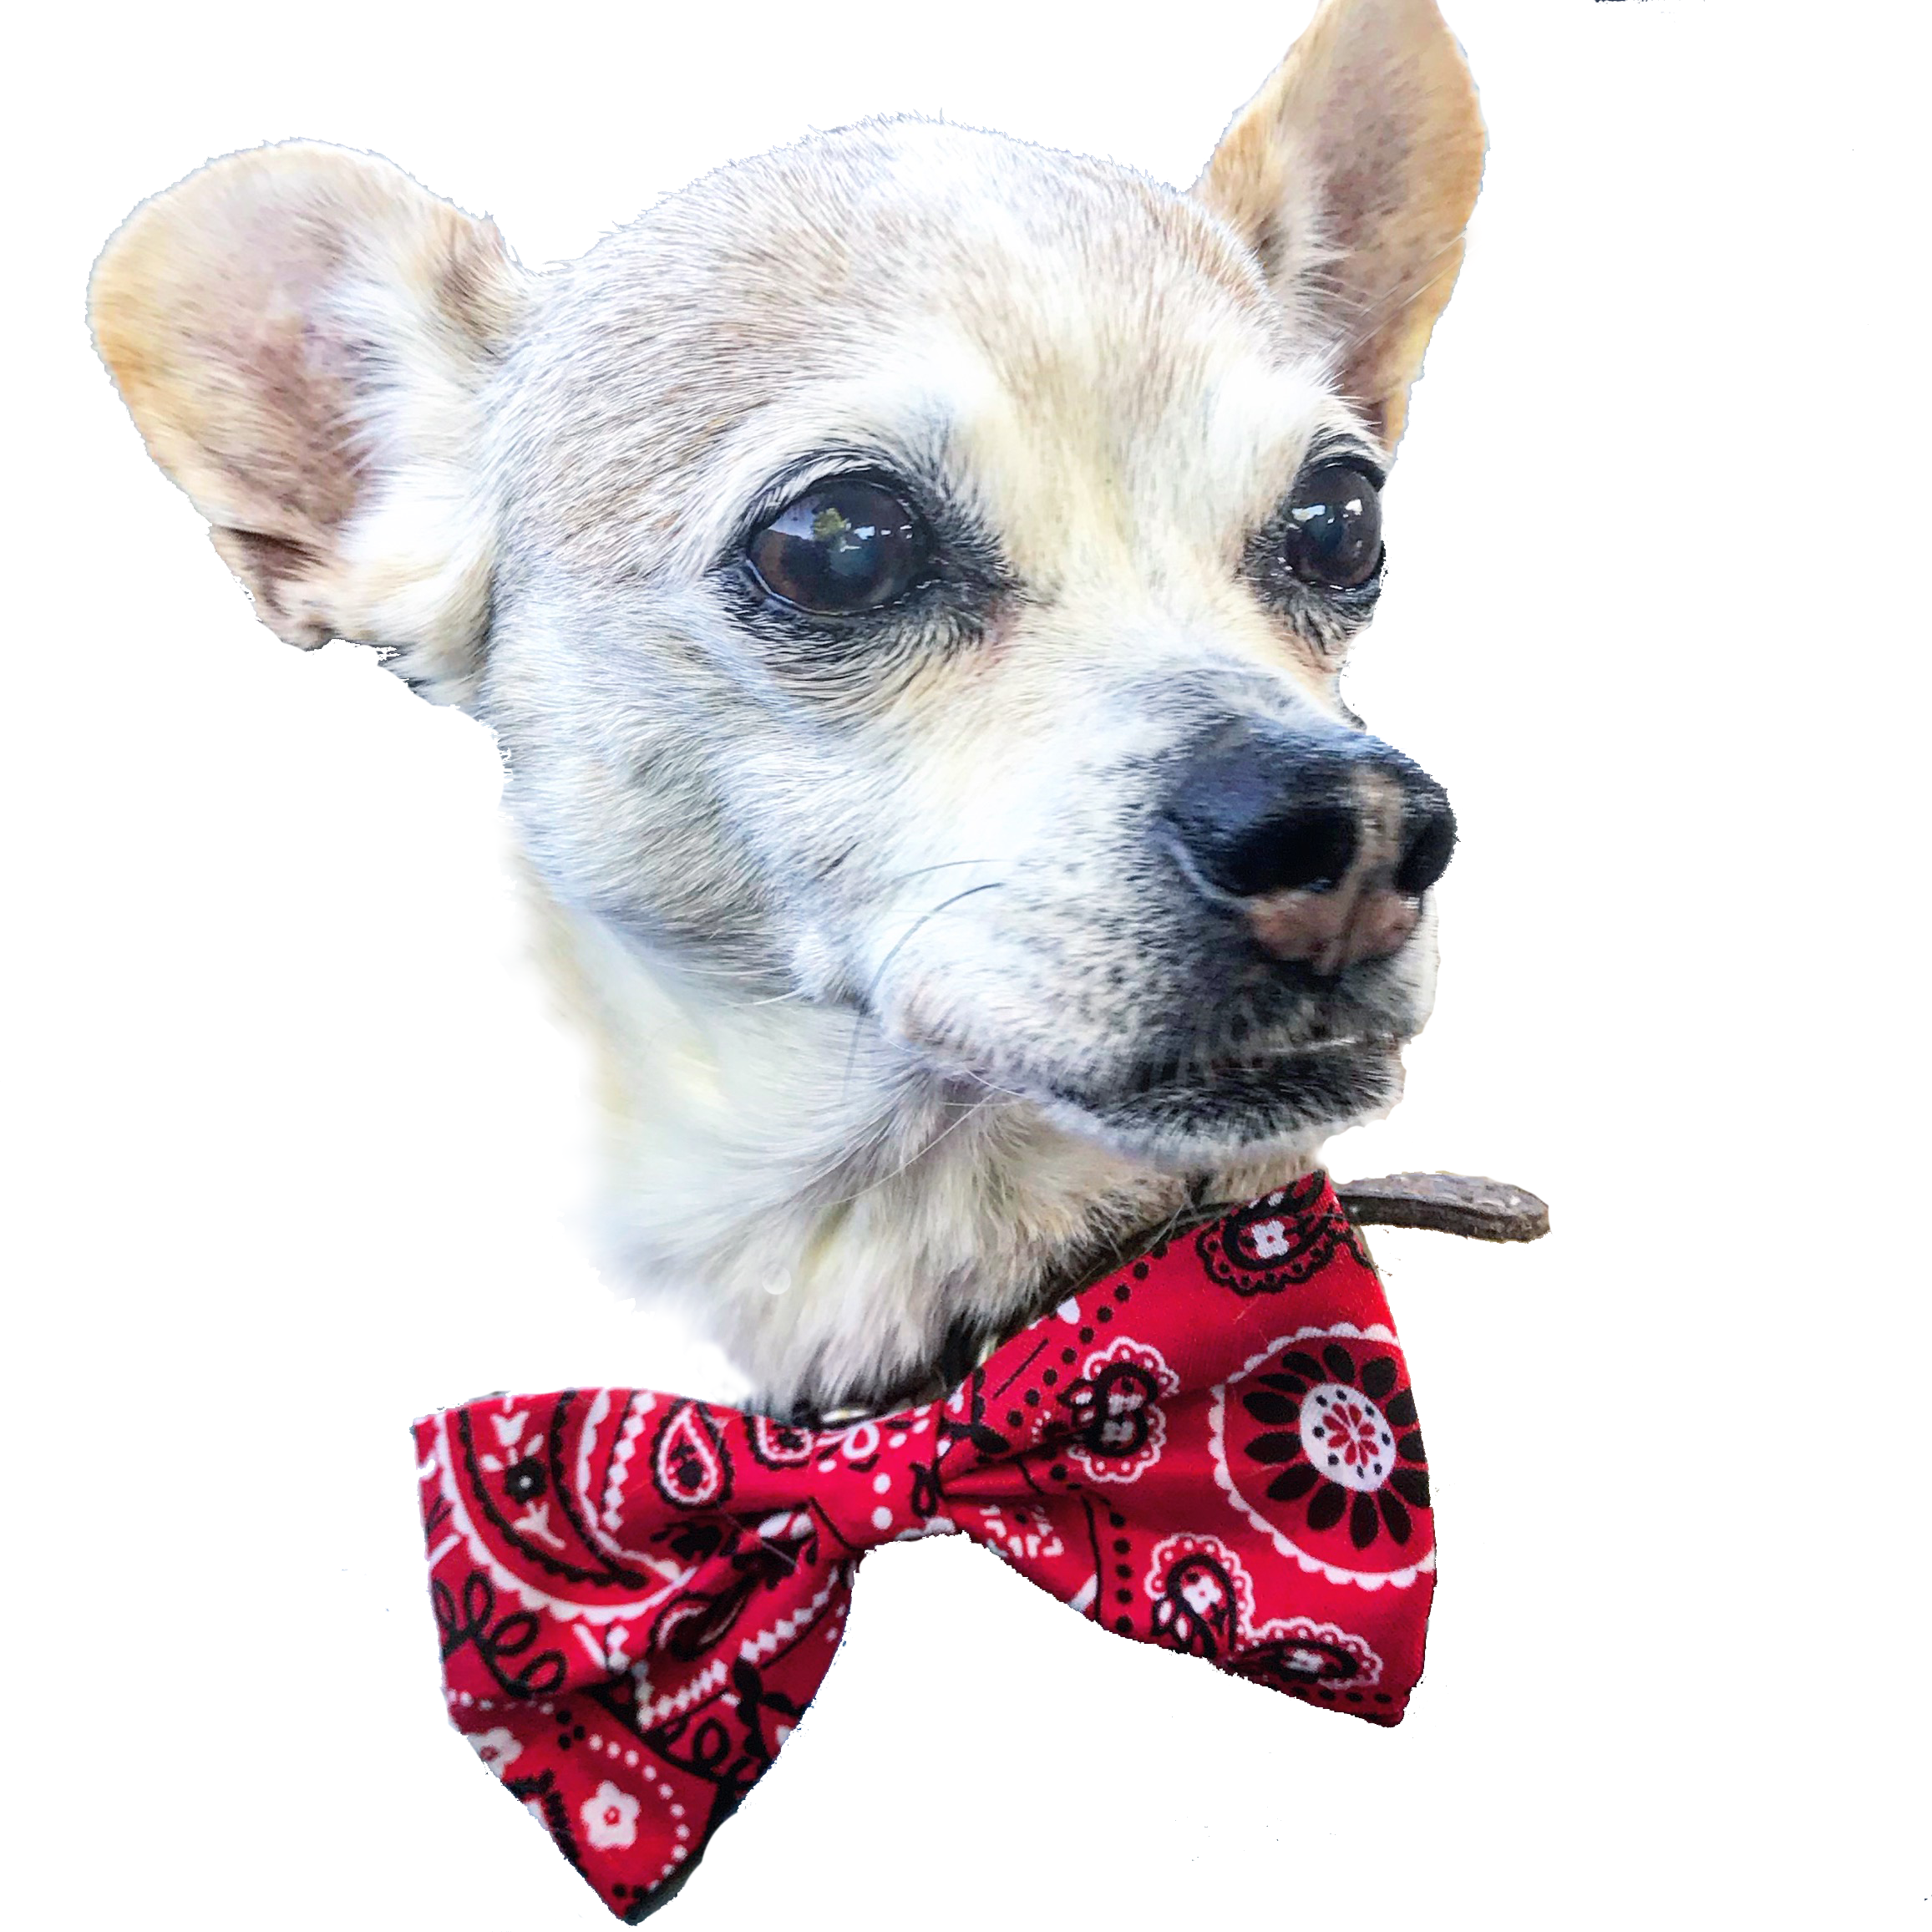 Crowder Pea  - approx. 13 years old, rescued chihuahua mix, client since 2016